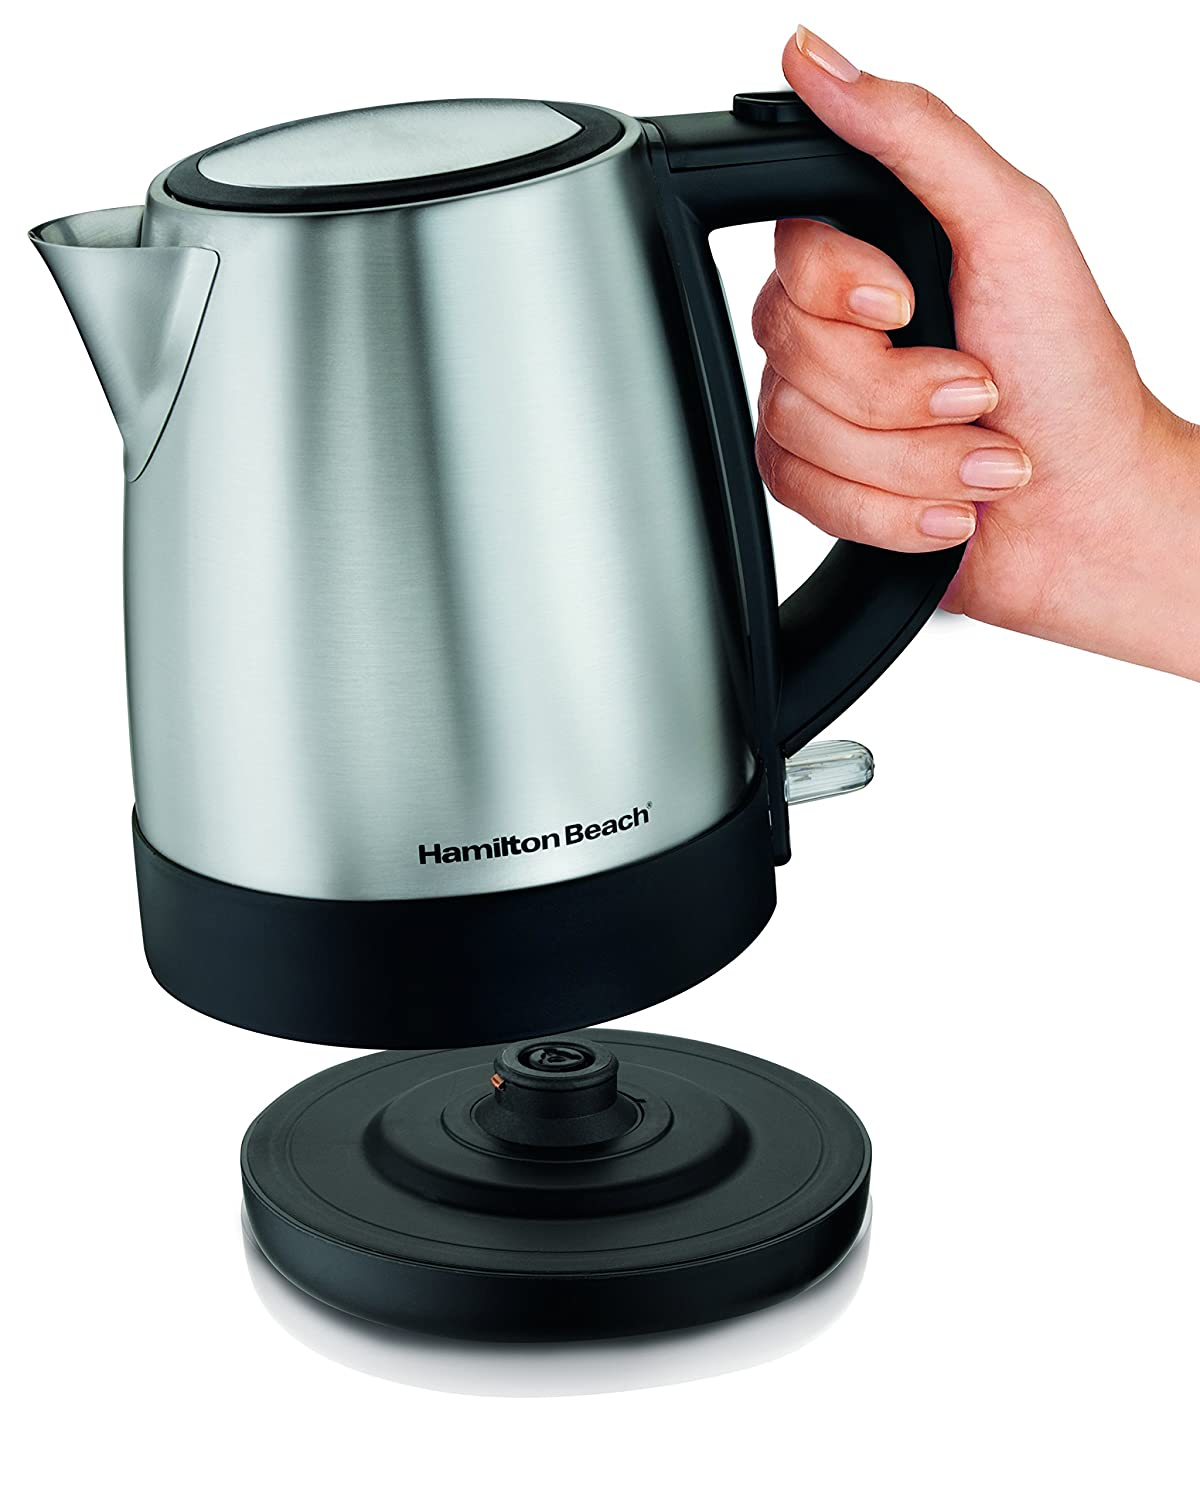 Hamilton Beach Stainless Steel Electric Kettle, 1.7-Liter, Silver ...